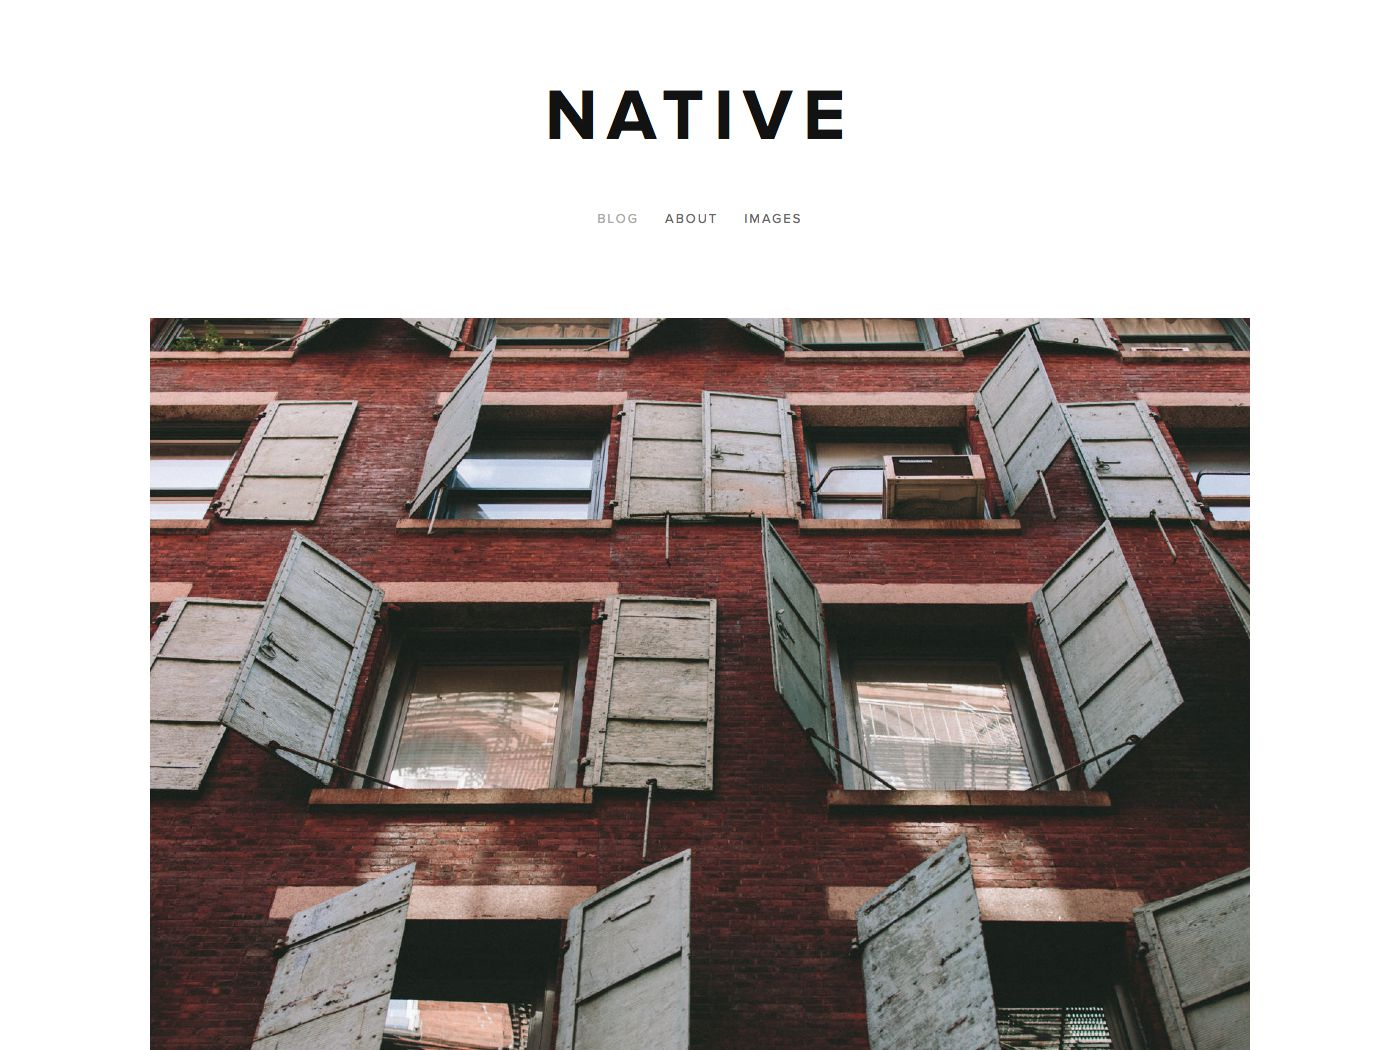 Native Squarespace Template Analysis — Using My Head – Squarespace Expert, Designer and Trainer